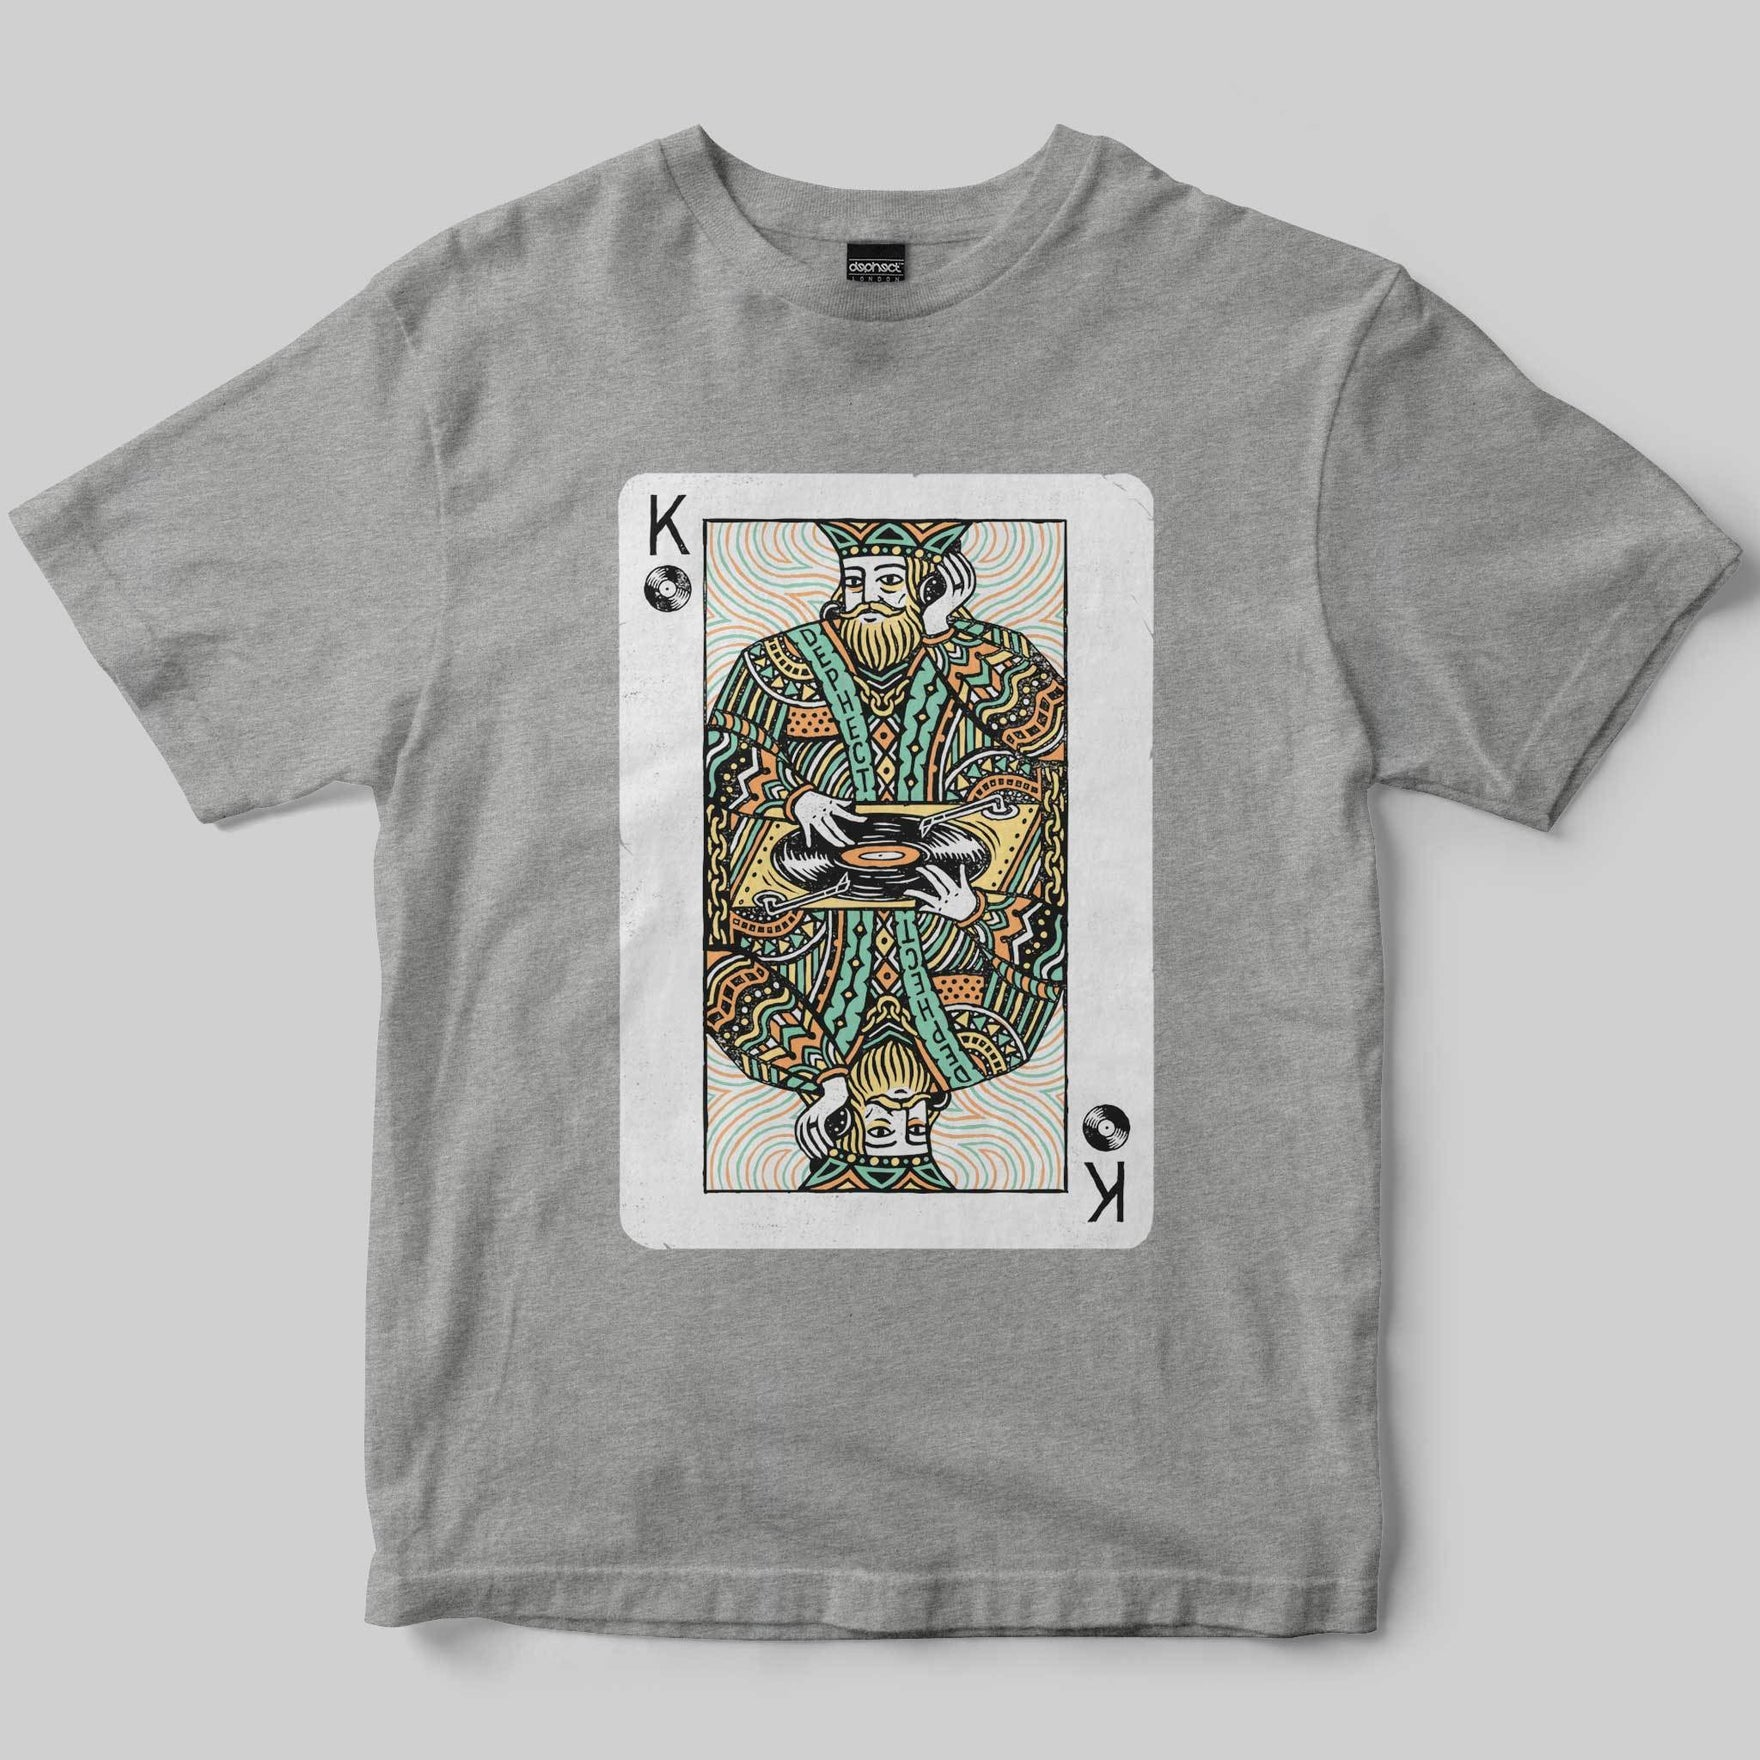 Turntable King T-Shirt / Heather Grey / by Pedro Oyarbide